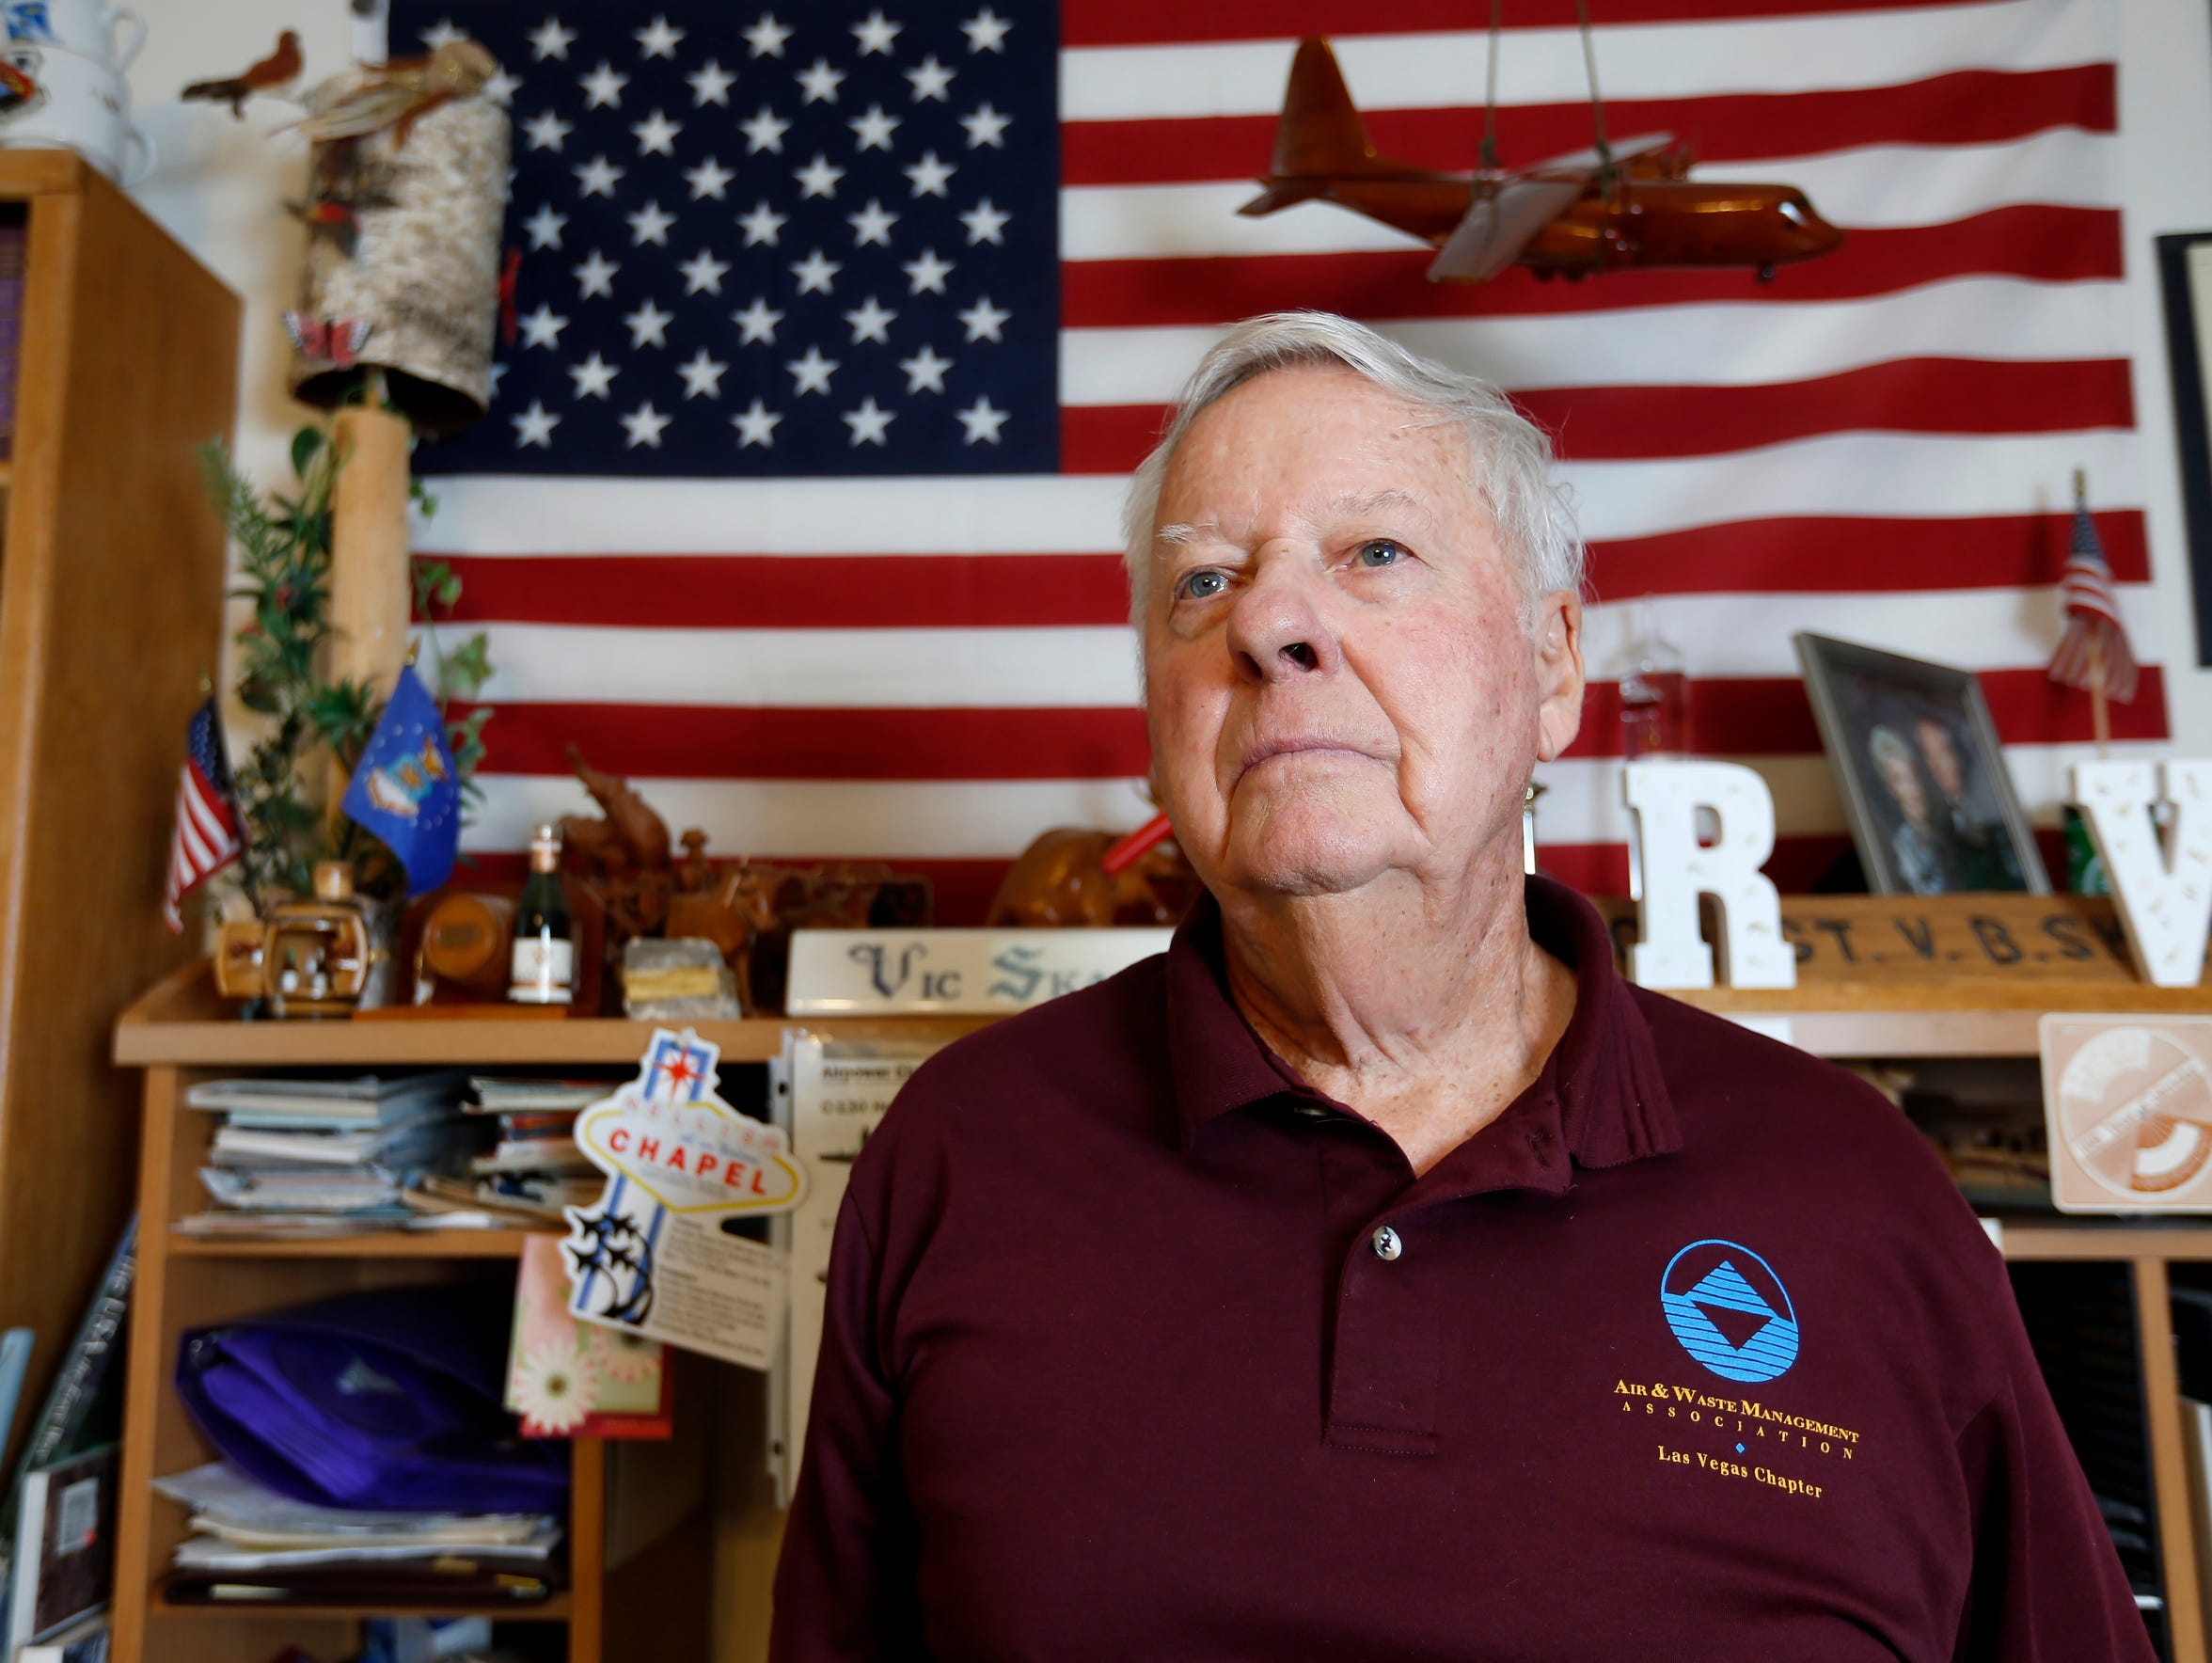 Air Force veteran Victor Skaar says he has been denied